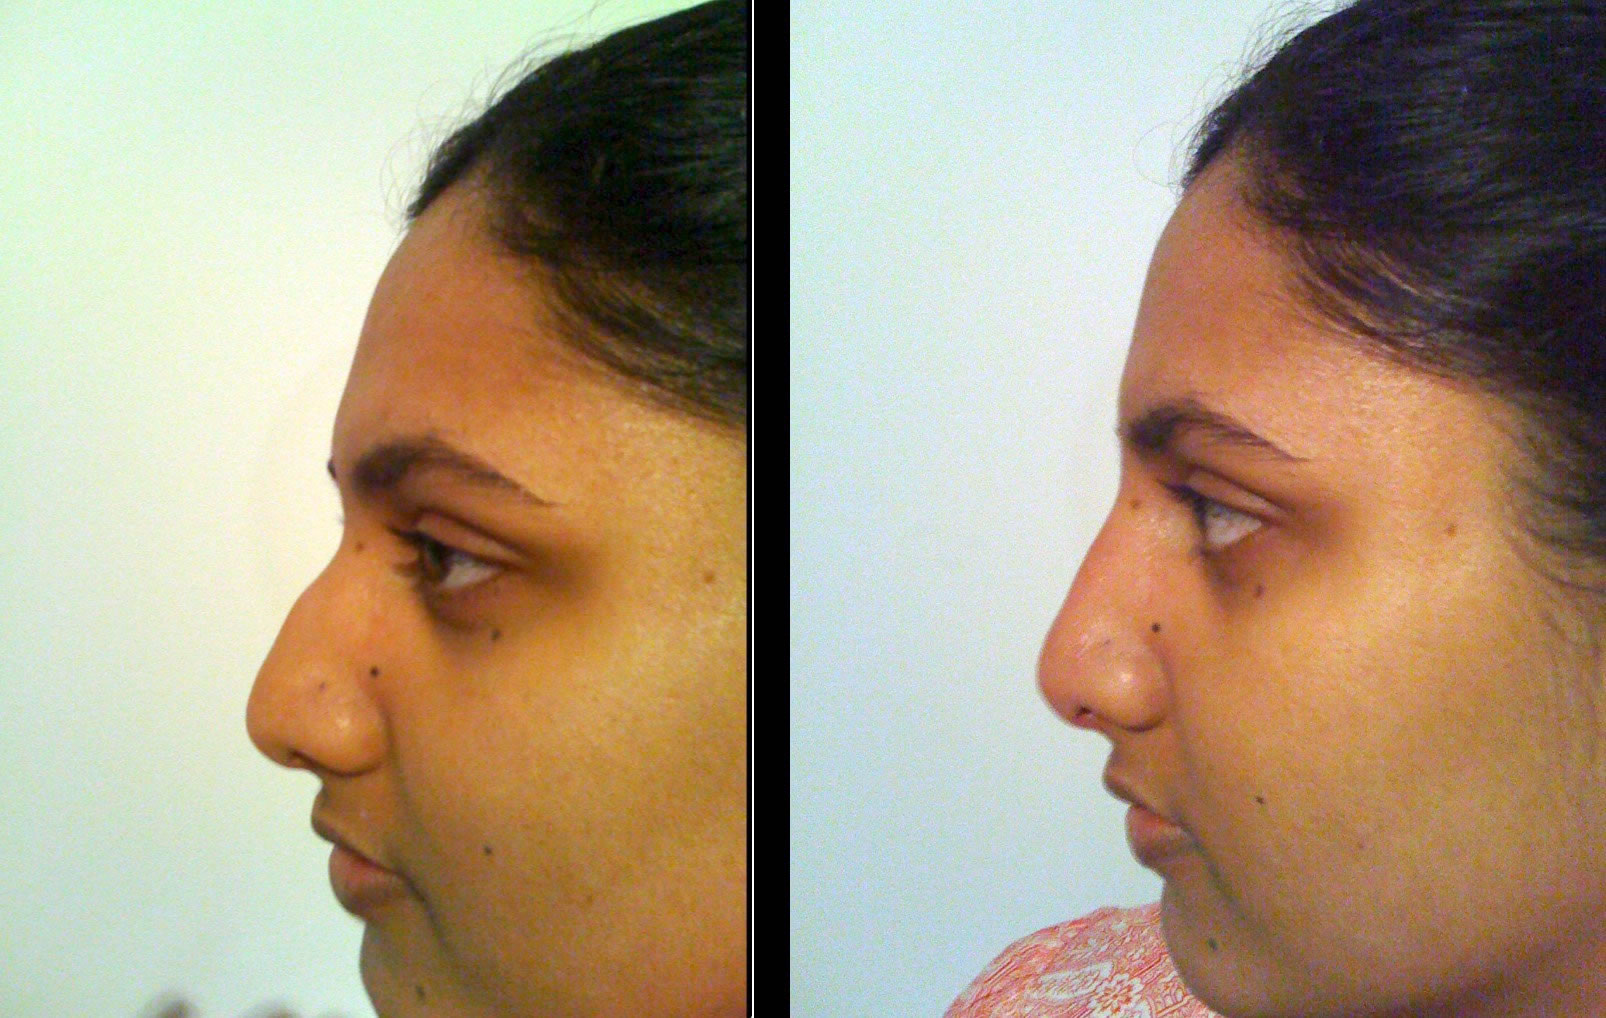 Non invasive nose augmentation before & after *